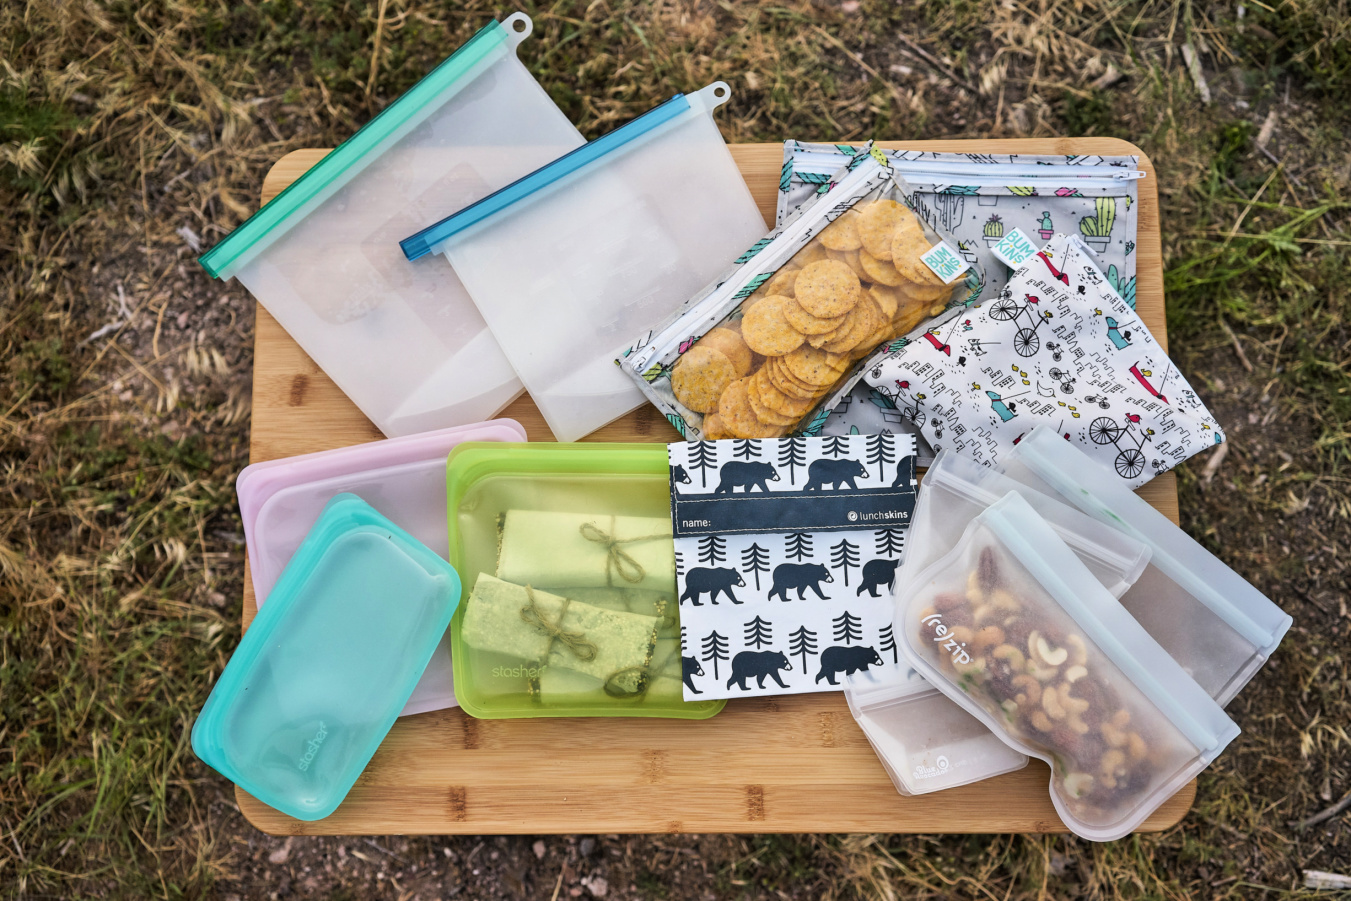 The best reusable bags for camping and hiking - a complete review! www.amandaoutside.com